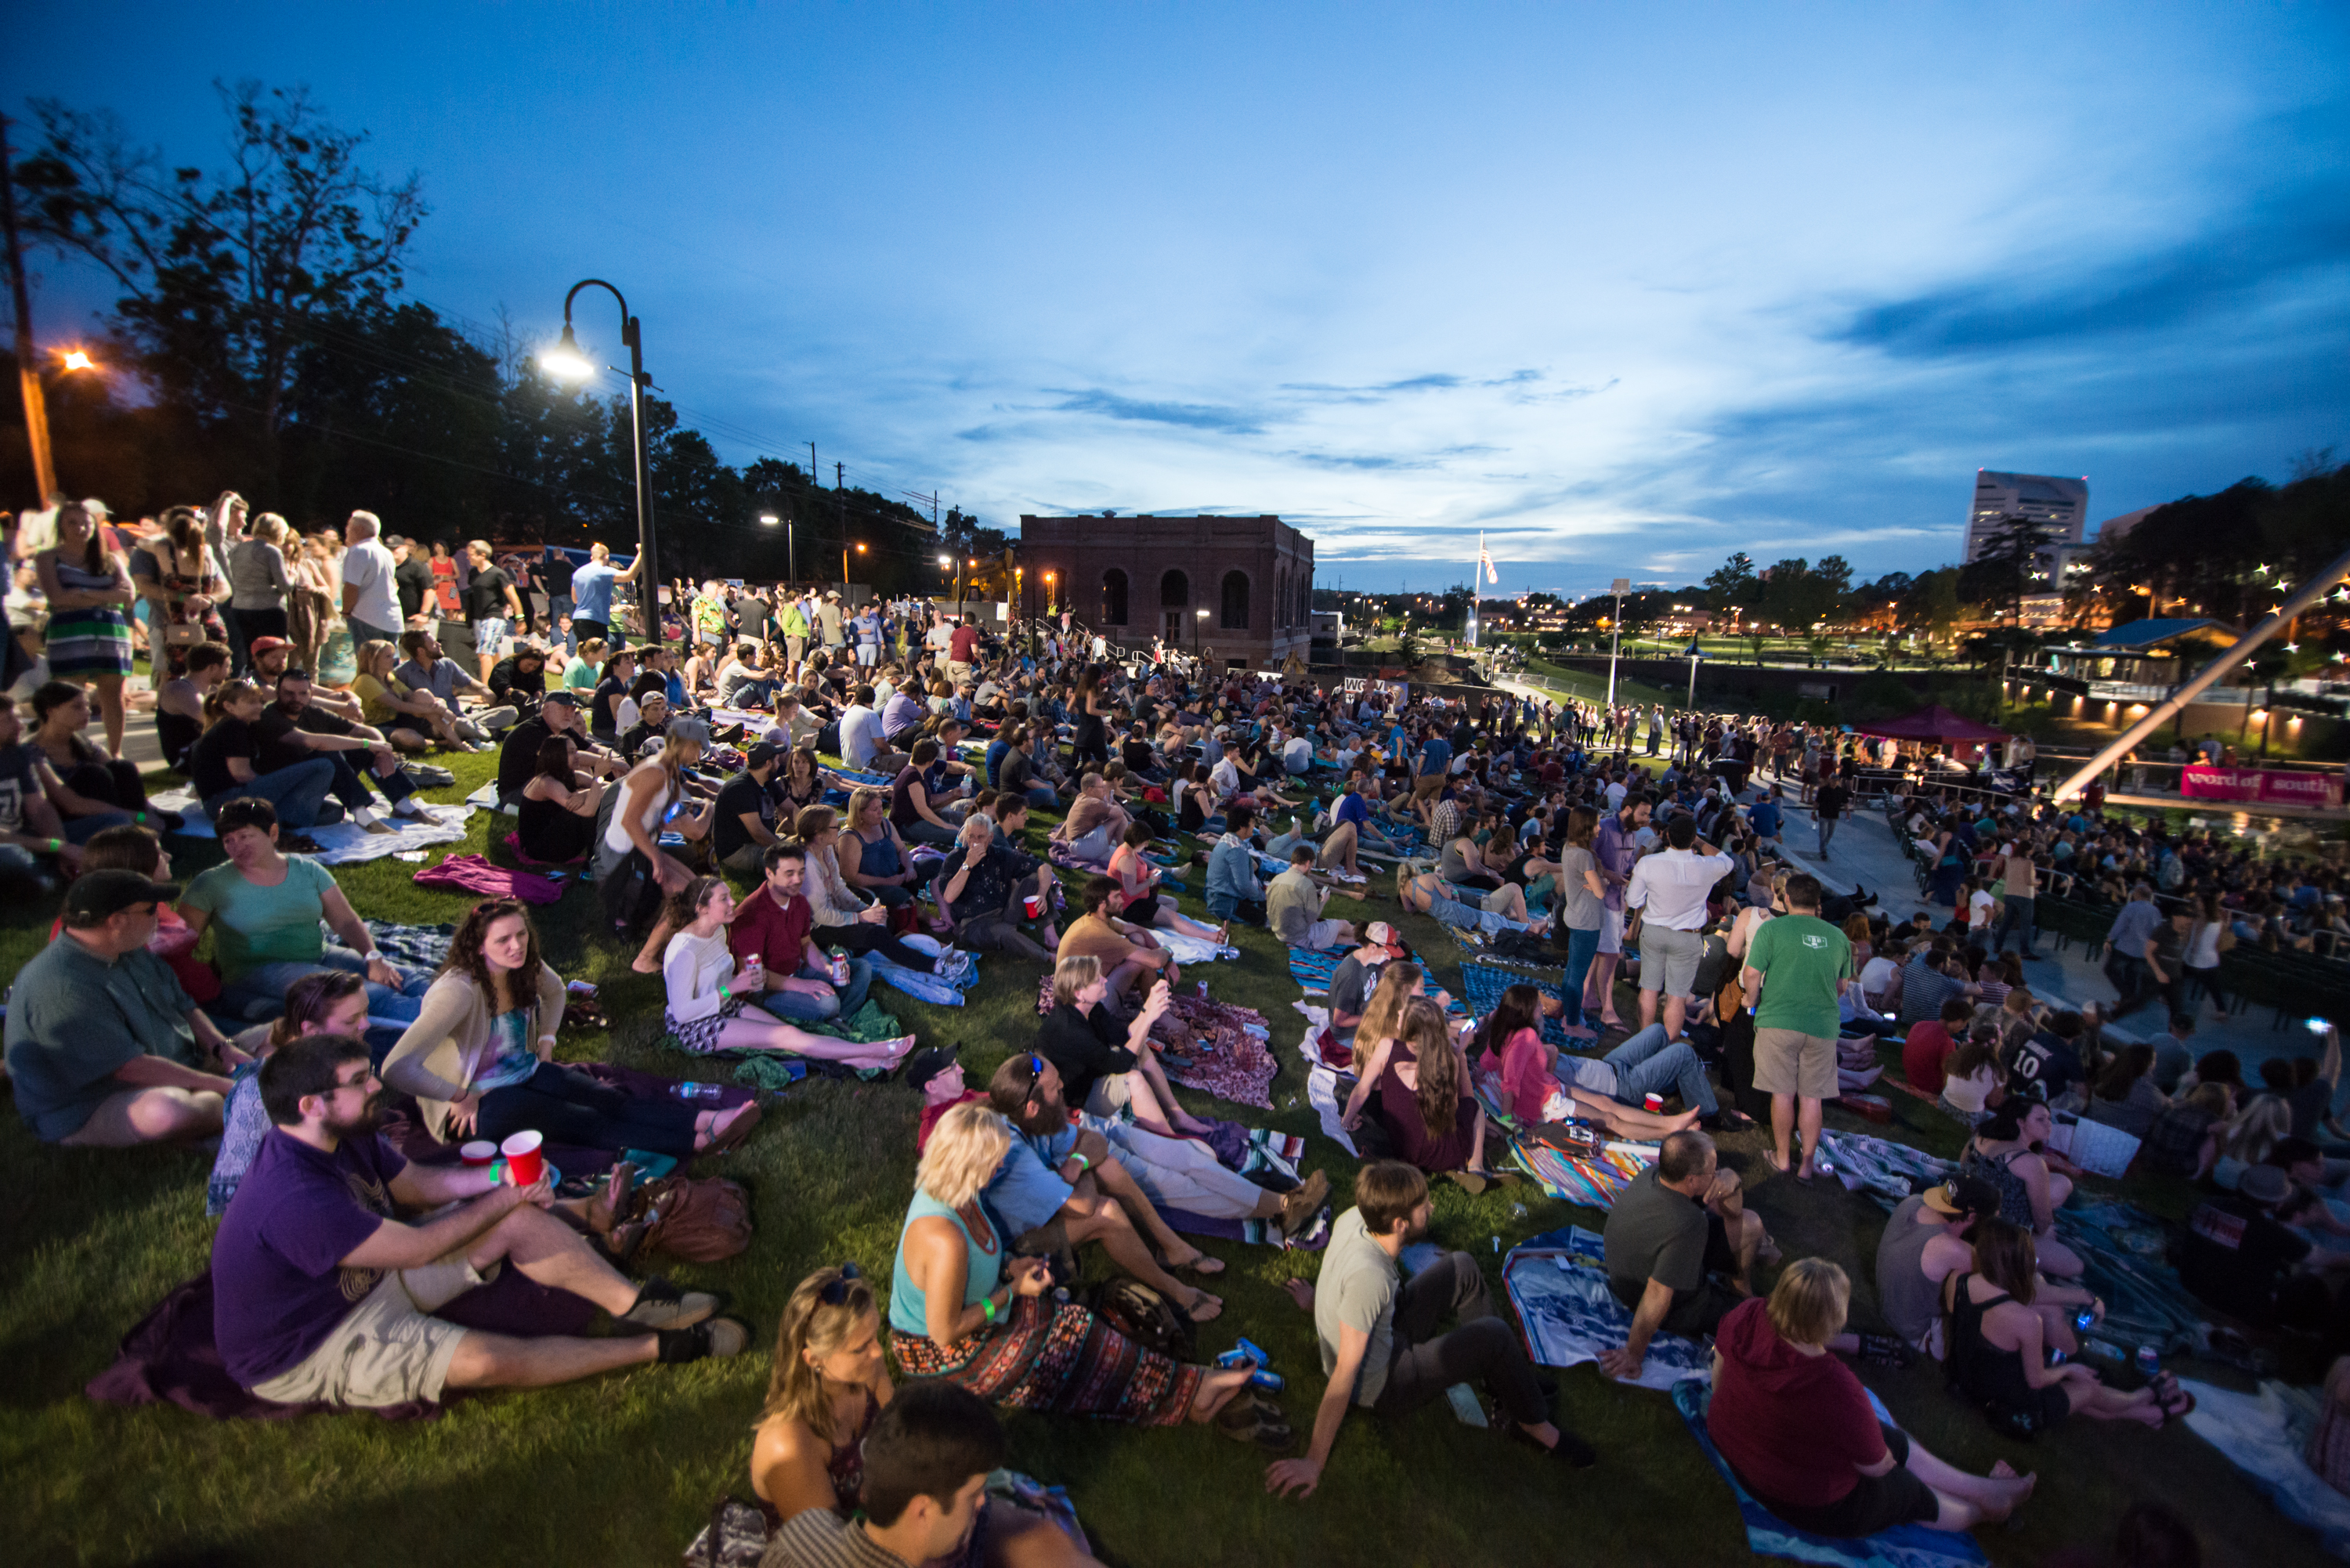 2016 Events at CapitalCityAmpitheater